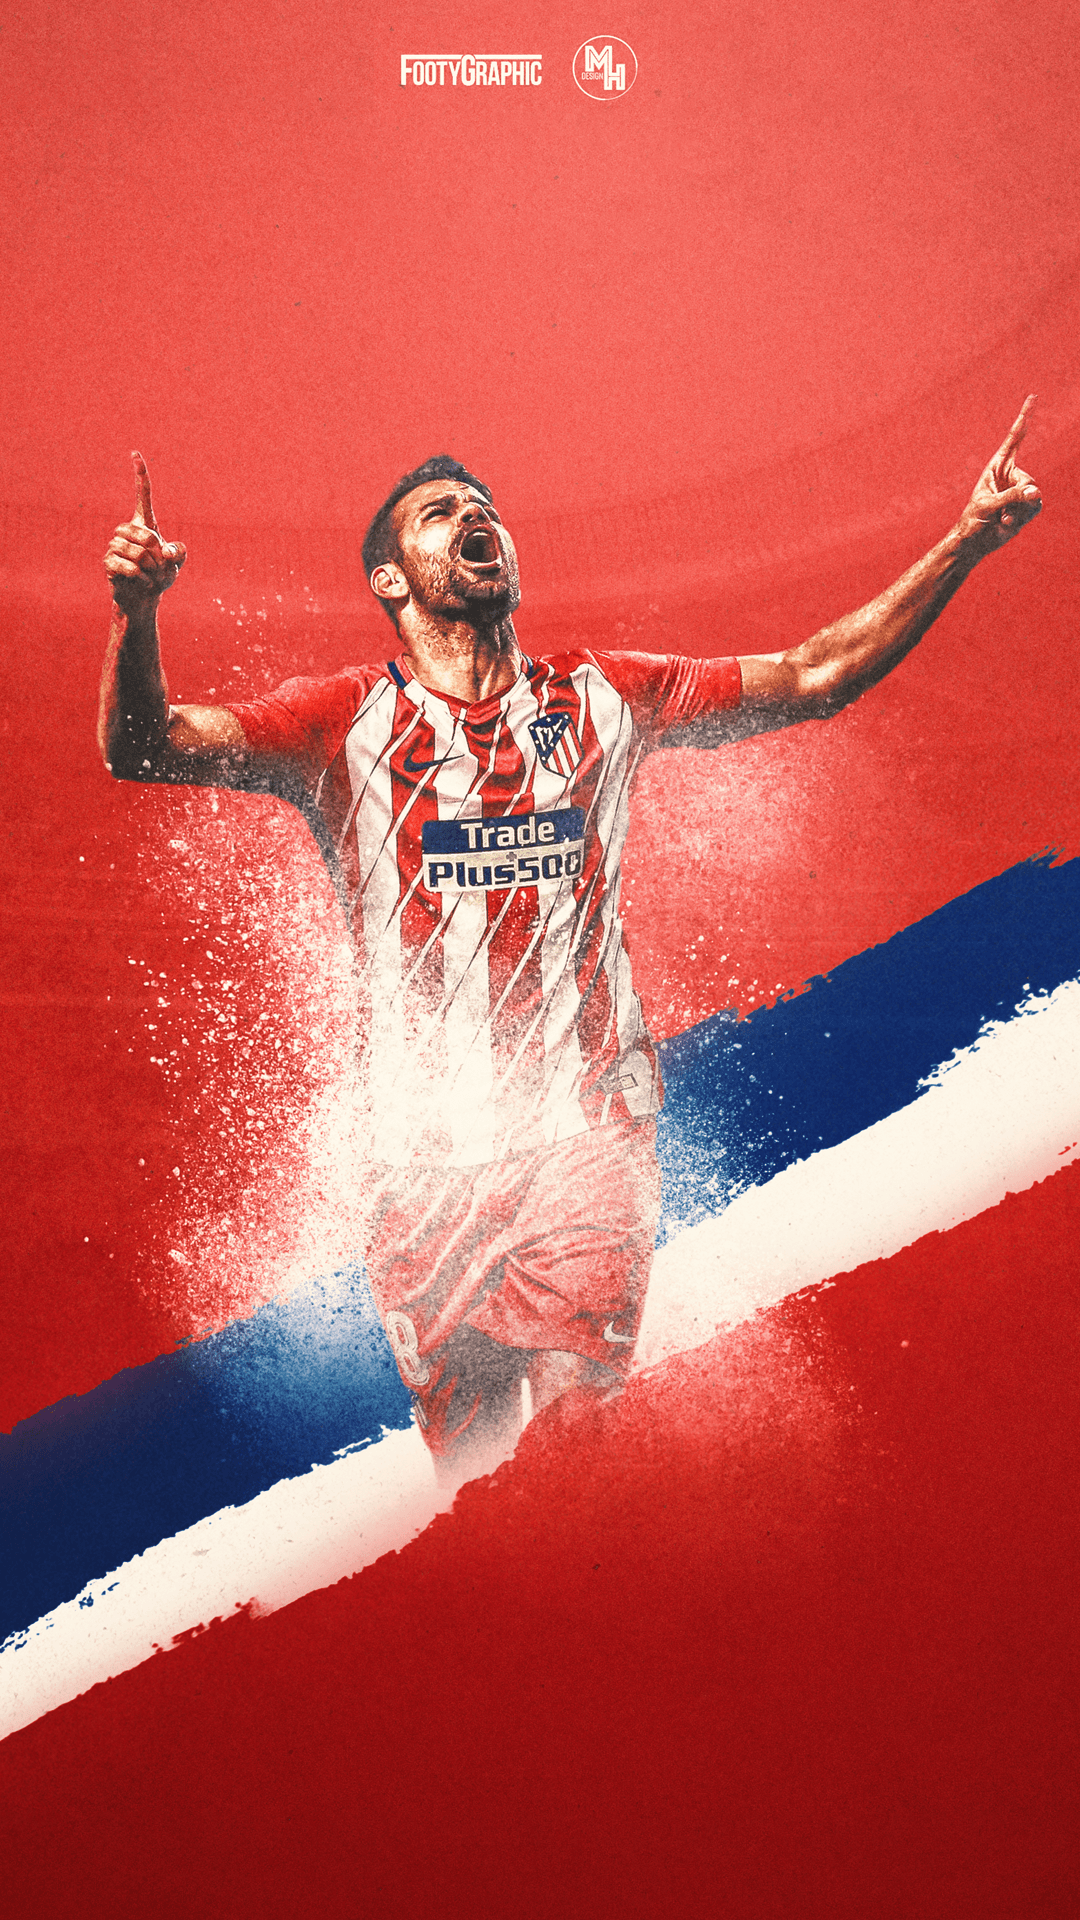 Diego Costa O FootyGraphic Football Lockscreens